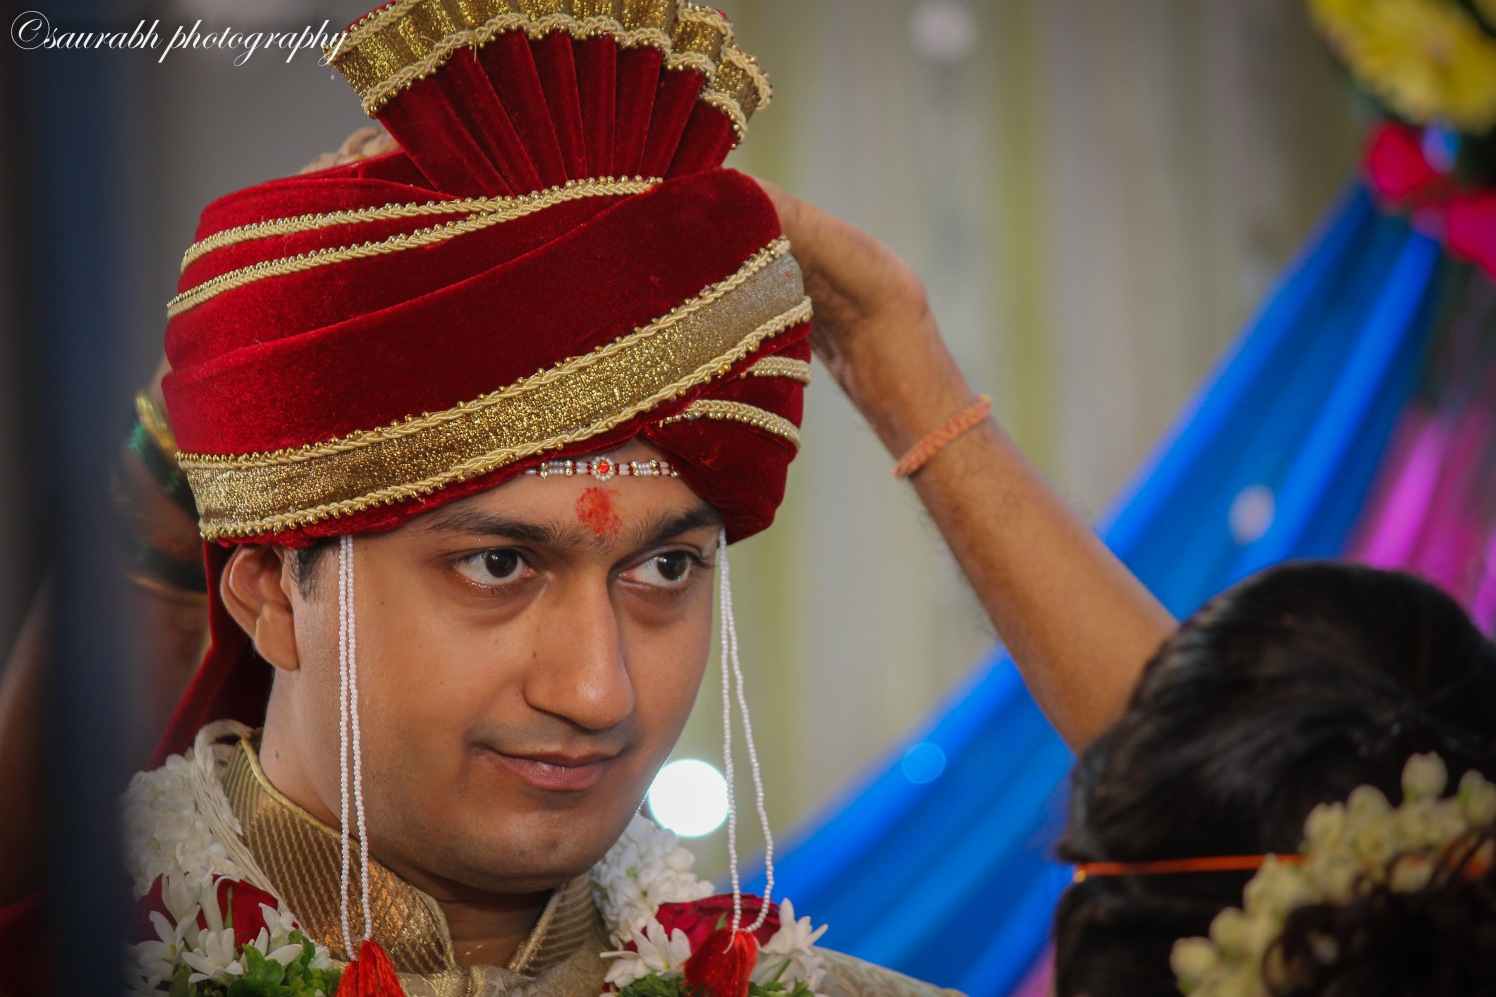 Glimpse of the wedding ceremony by Saurabh Photography Wedding-photography | Weddings Photos & Ideas